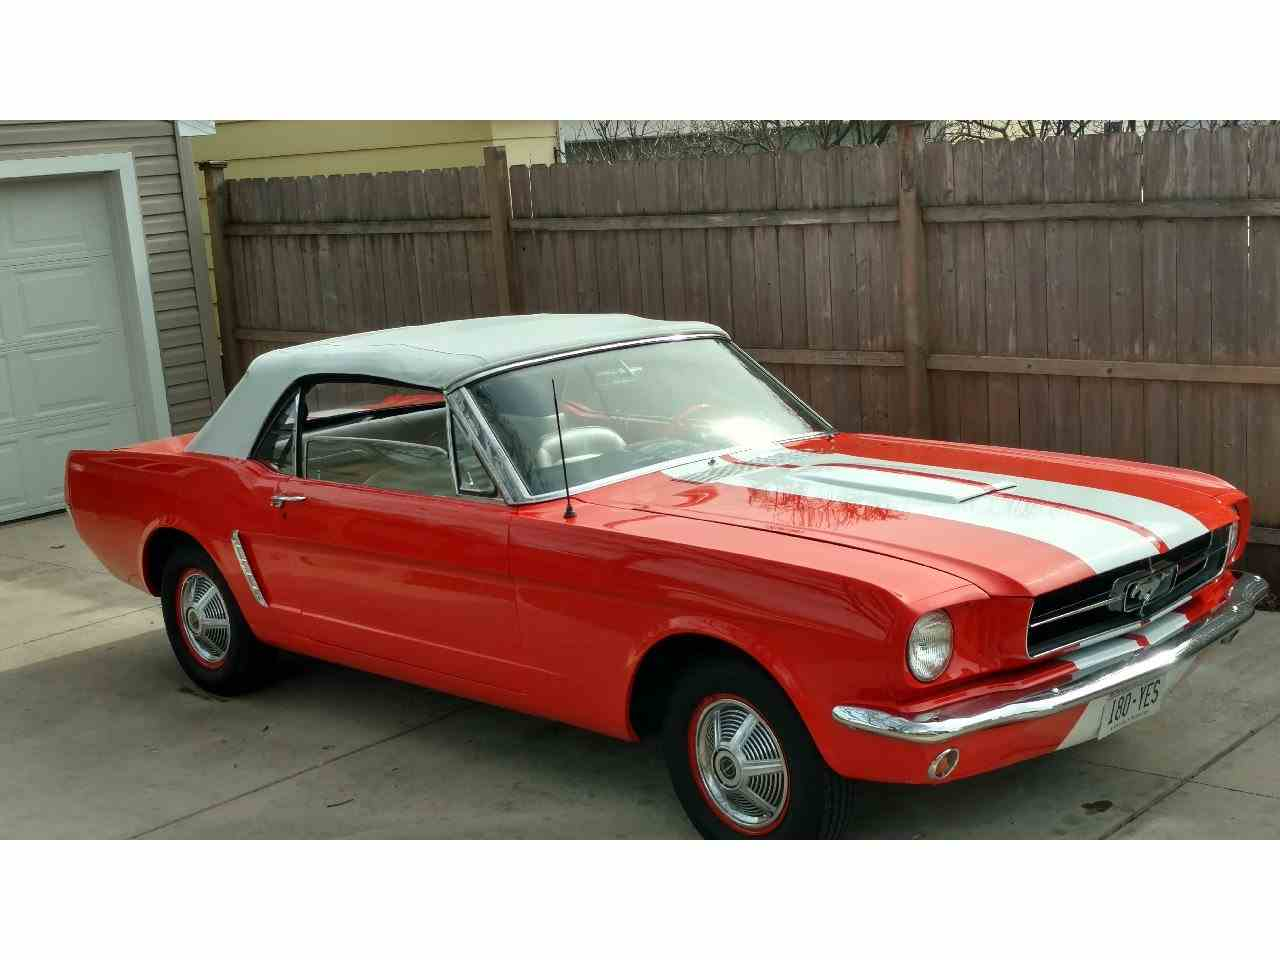 65 Ford Mustang - Ford Mustang For Sale Classiccars Com Cc